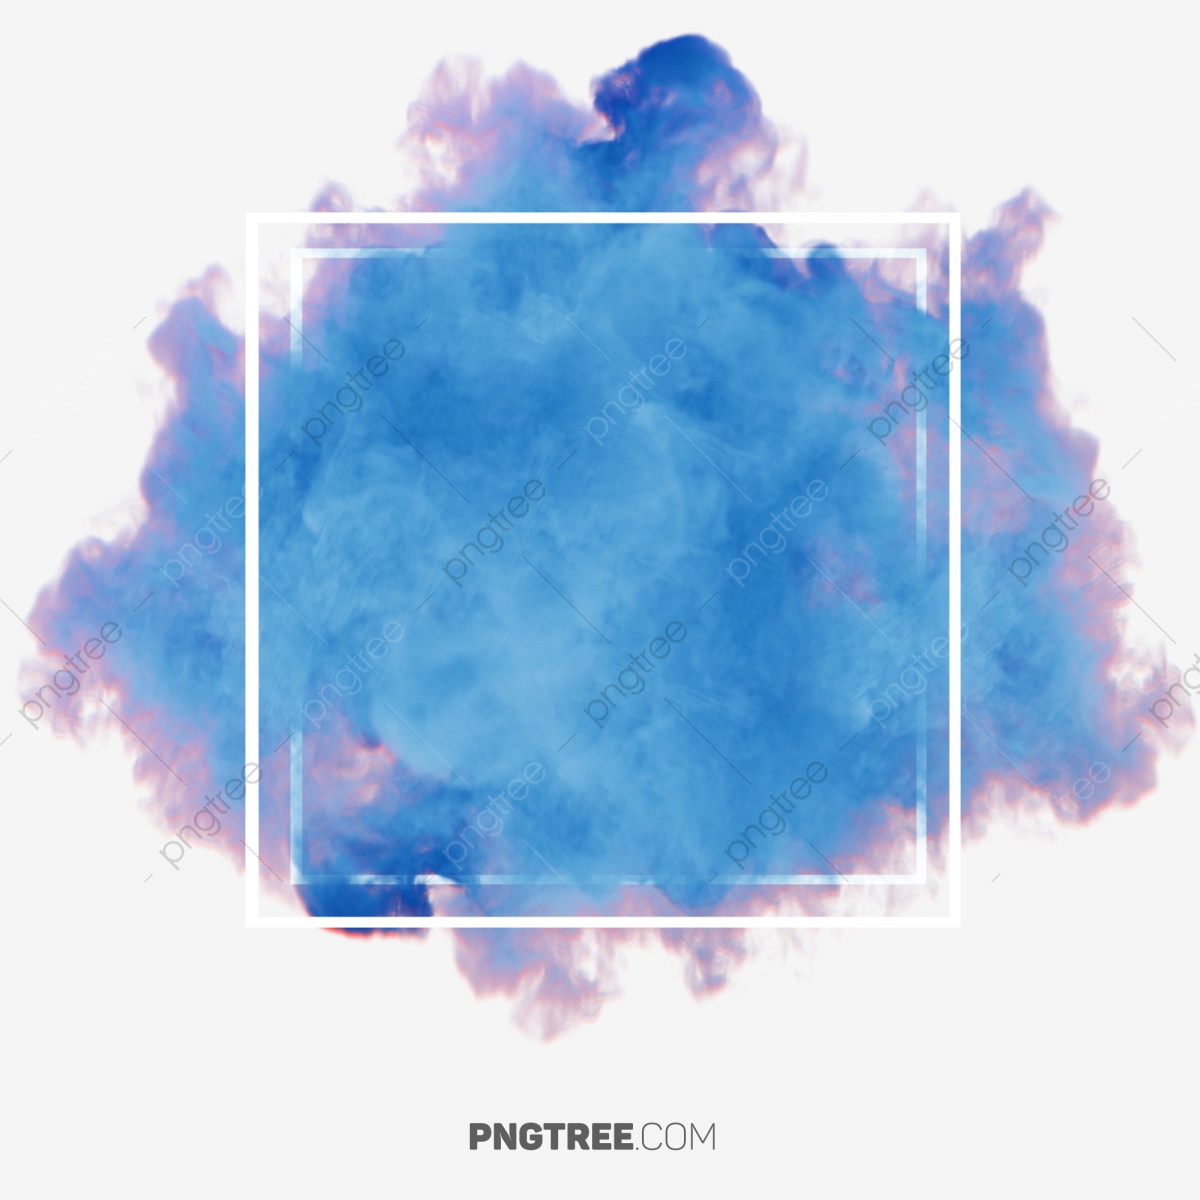 Colorful Smoke Abstract Frame Frame Pastel Square Png